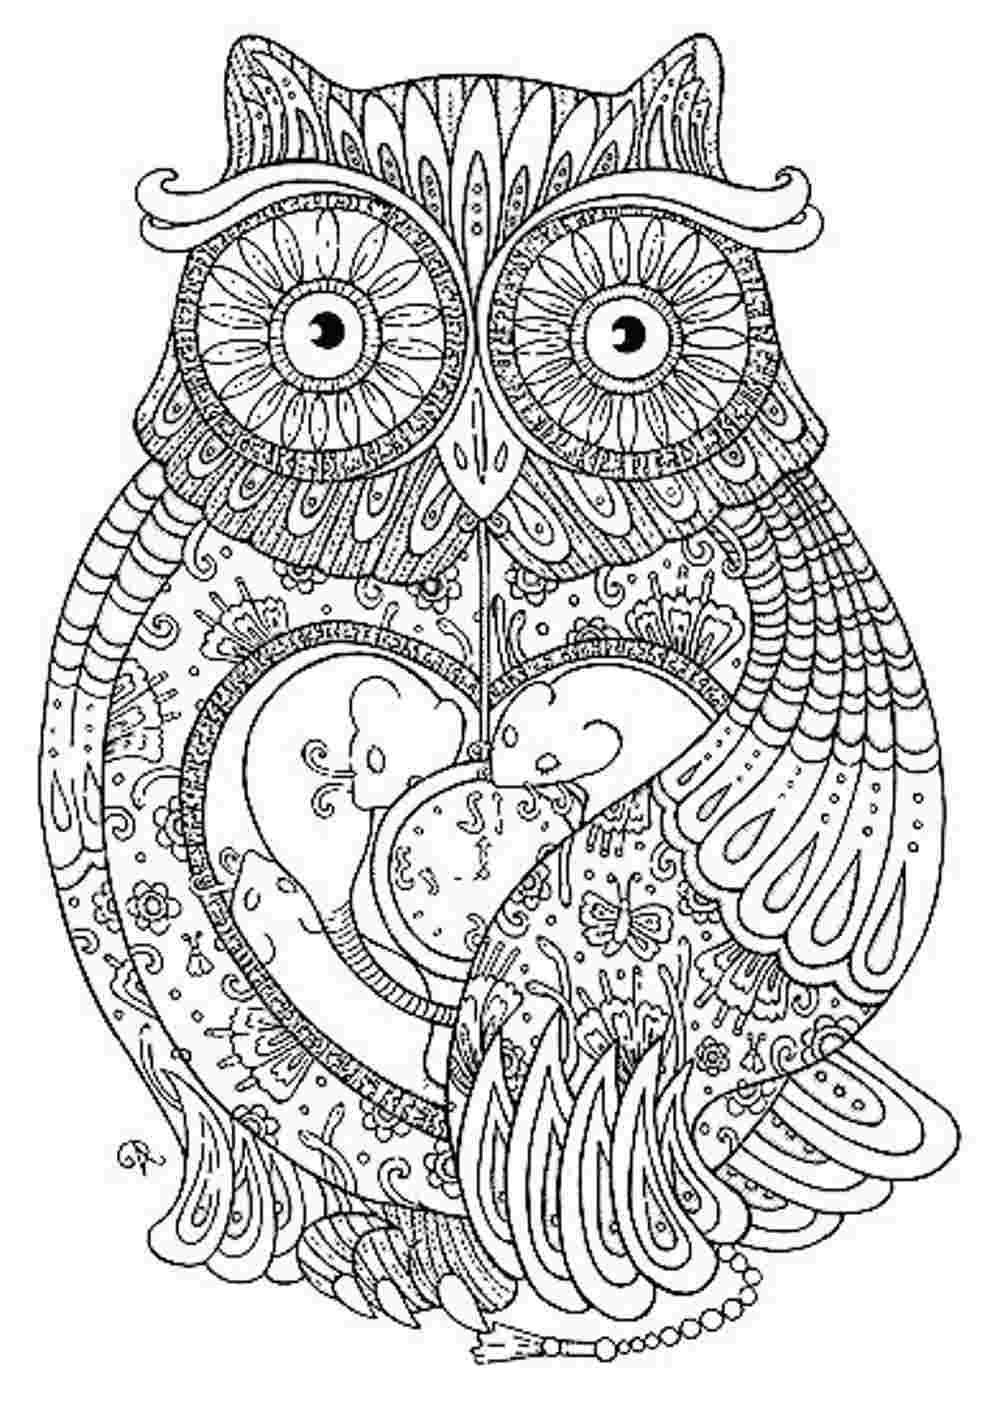 Mandalas Printable Coloring Pages